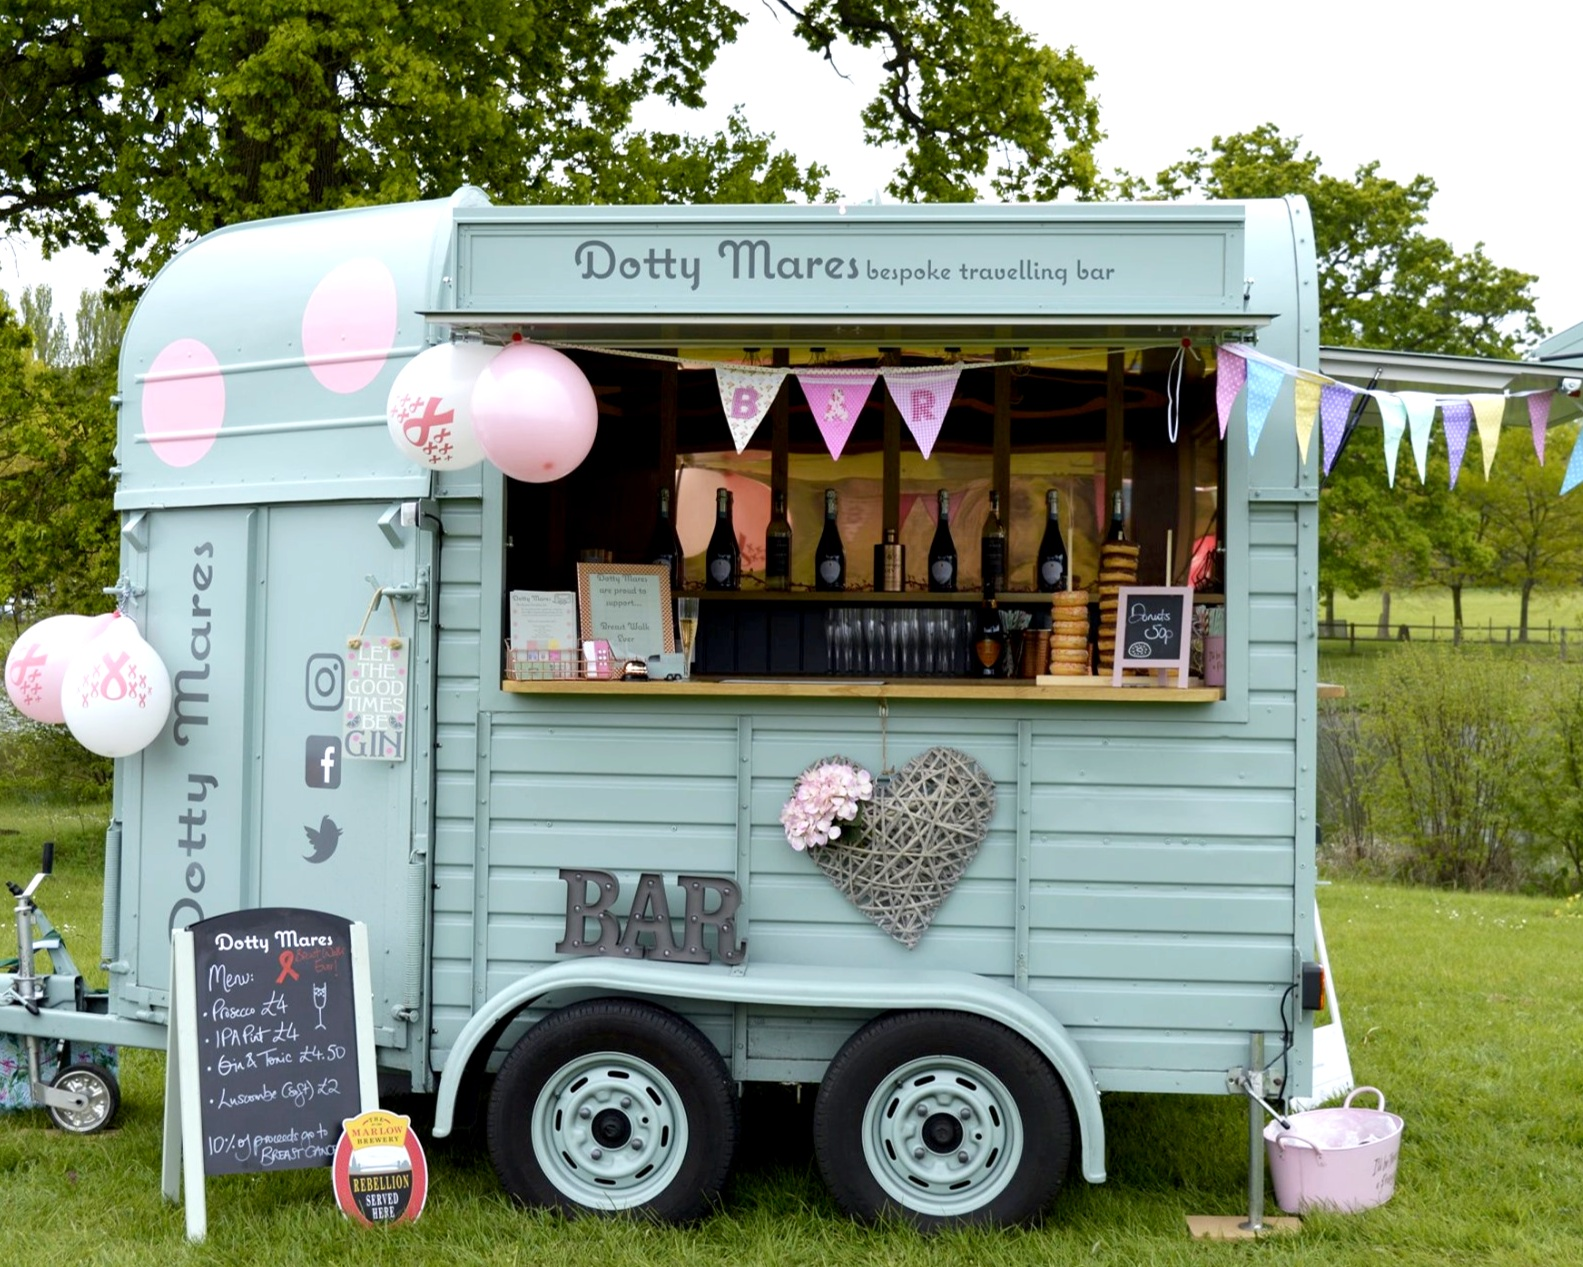 """""""A superb service from some truly lovely people"""" - Dotty Mares provided refreshment for our walkers at our inaugural Breast Walk Ever Berkshire Event for Against Breast Cancer - a research charity for secondary spread cancer. The horse box was a wonderful addition to the finishing village and the participants were absolutely delighted with the contents of course! They even put on ale for the men who were supporting their mums, wives, girlfriends and families. A superb service from some truly lovely people. Will definitely use again.Breast Walk Ever05/05/19"""